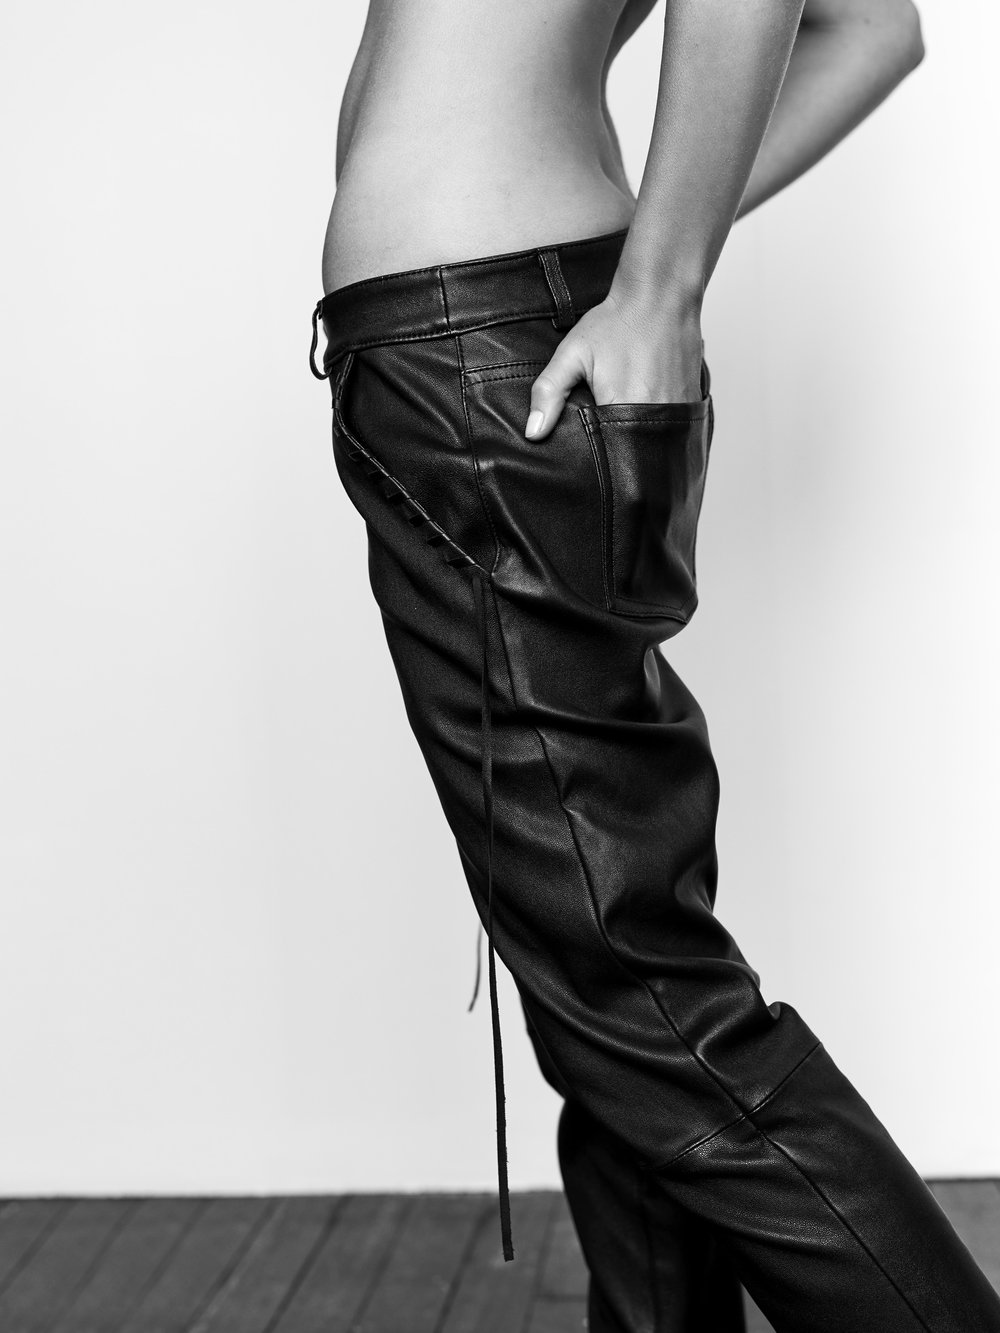 West14th-AW17-Campaign-Image-3-The-Bondi-Slouch-Pant-Black-leatherjpg.jpg